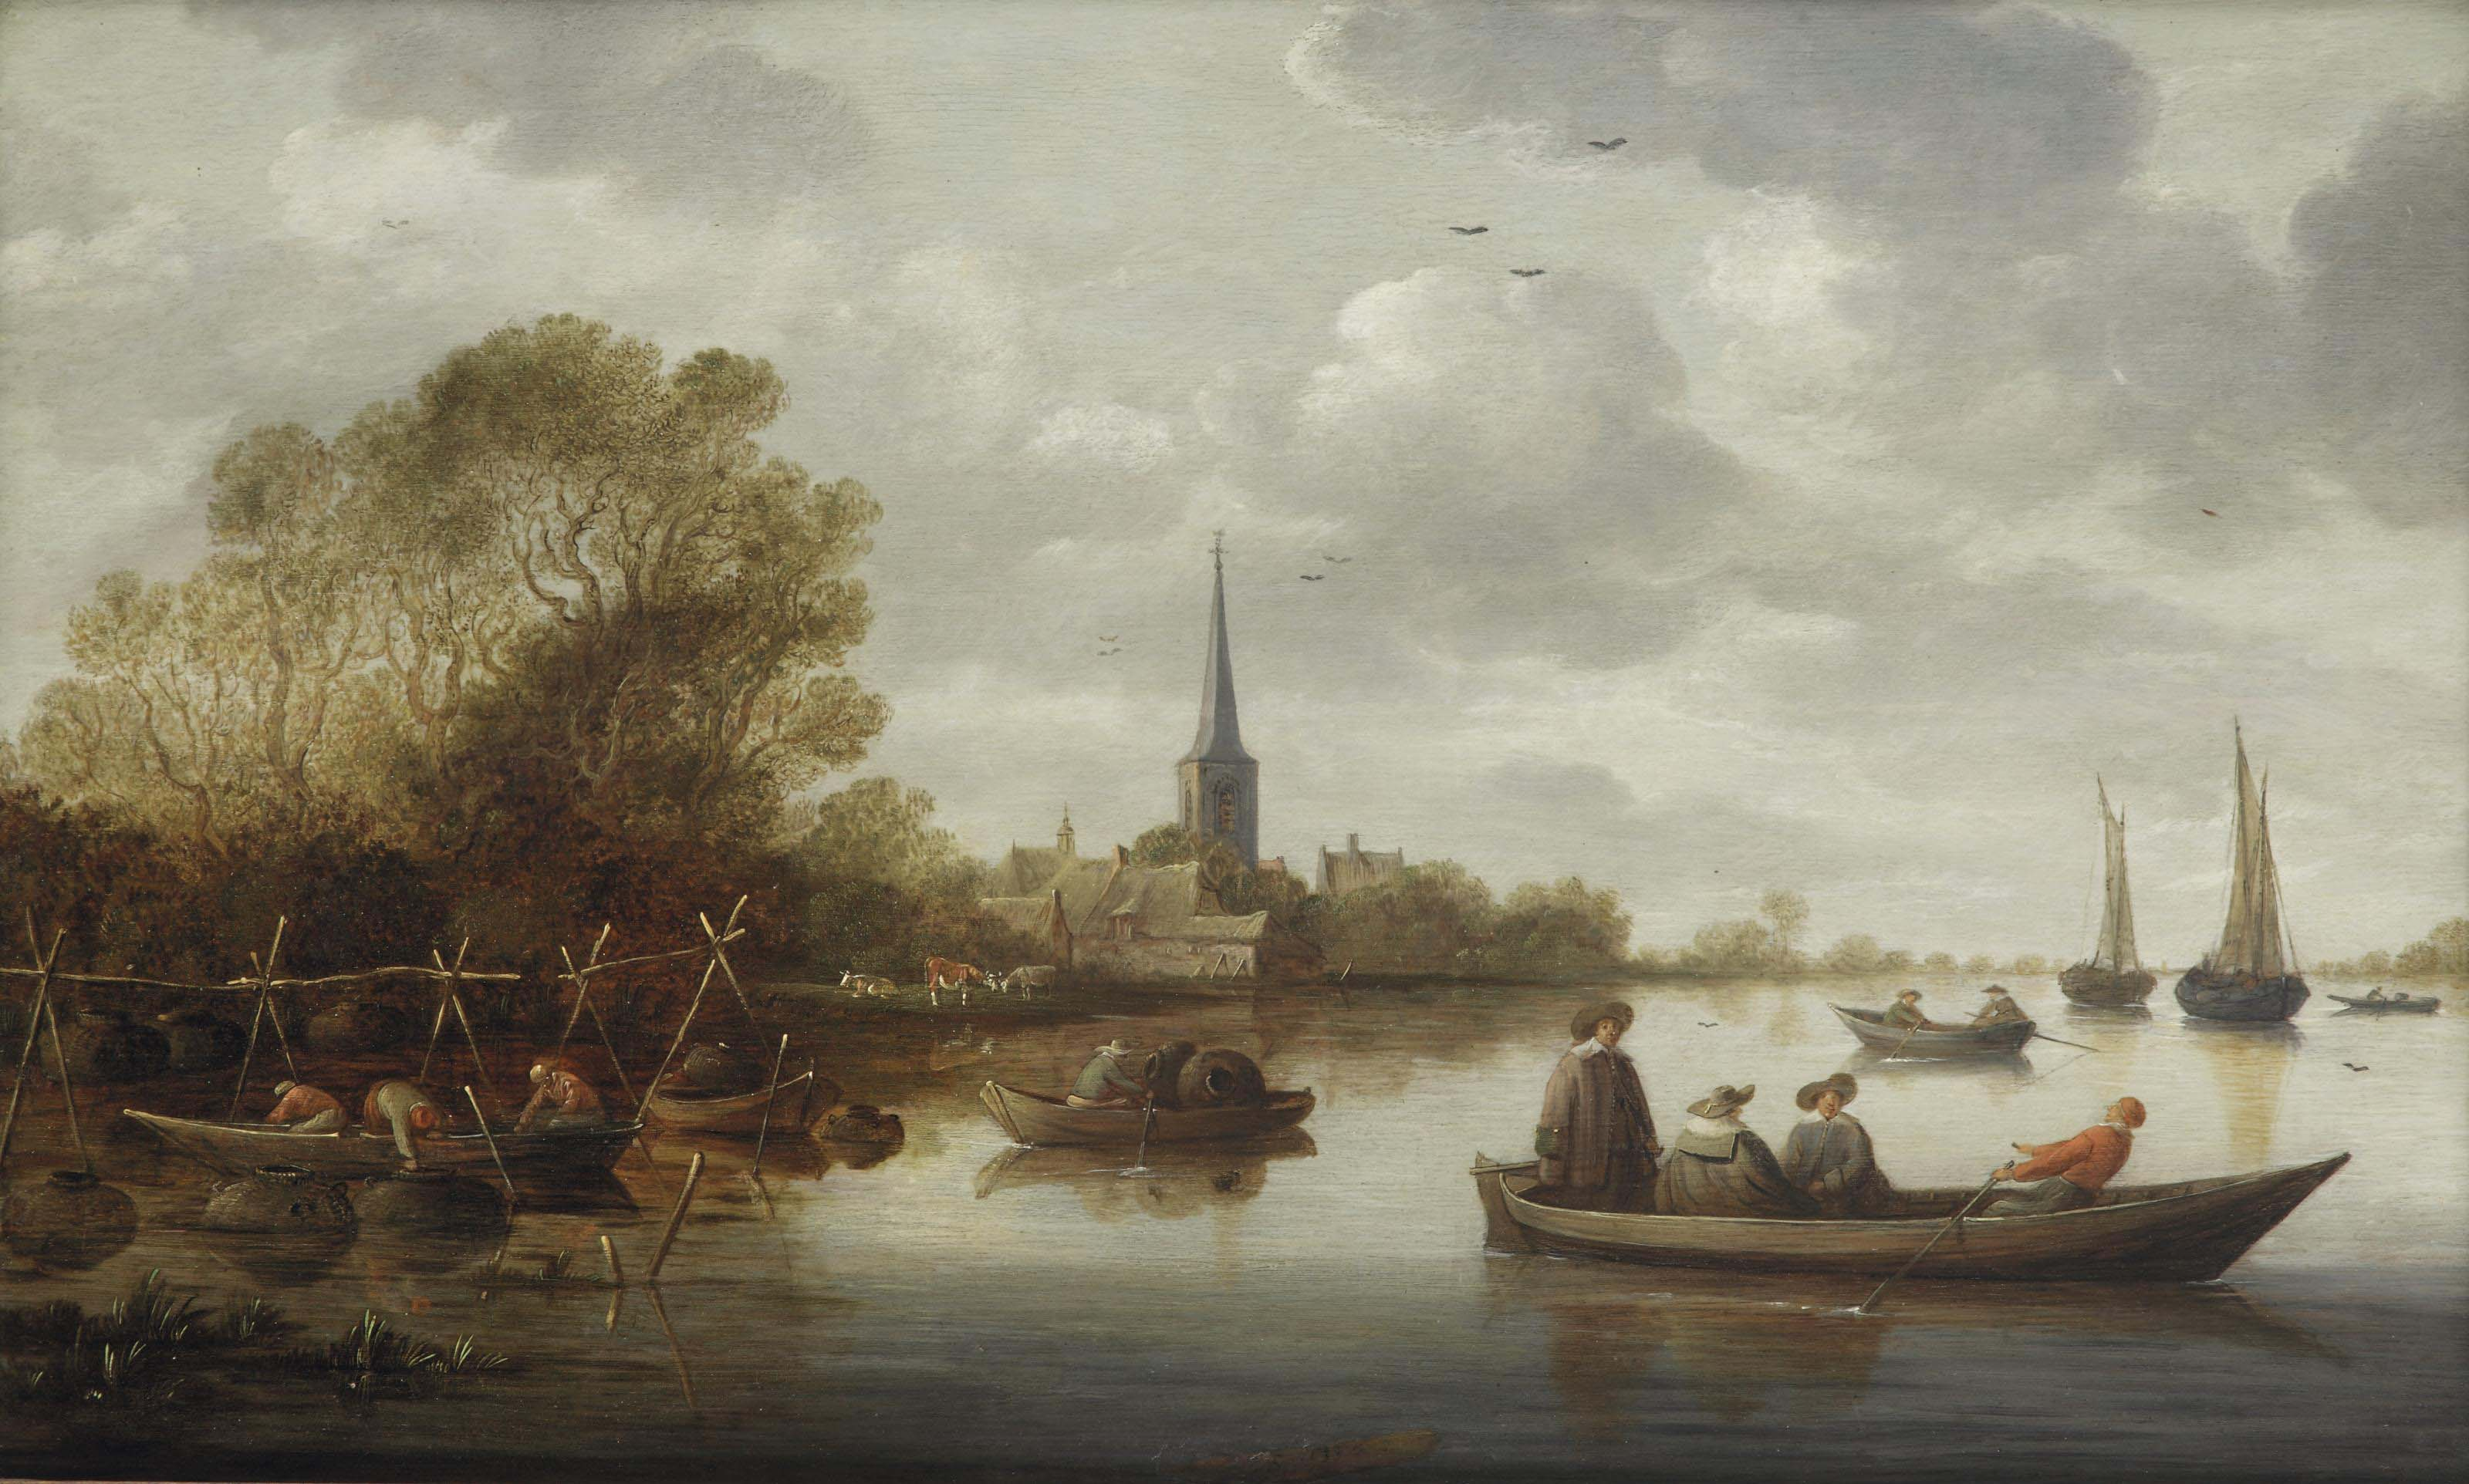 A river landscape with fishermen, elegant figures in a ferry, a village and sailing vessels in the distance